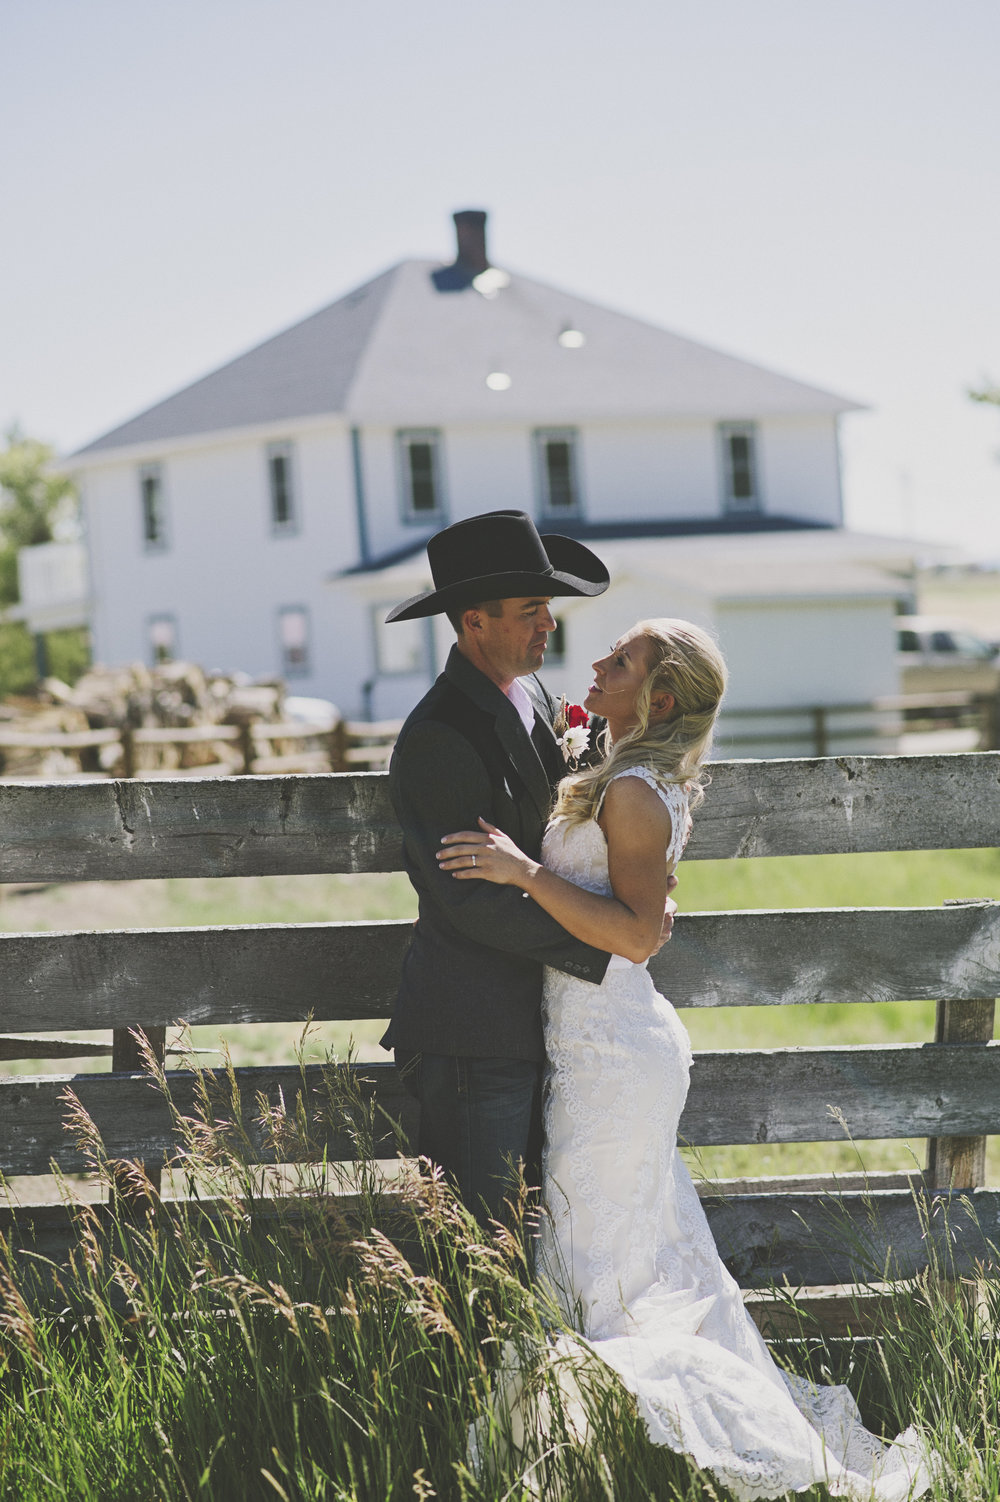 Erica Lind + Jeff Heim Wedding_Rustic Wedding_Montana Wedding_Kelsey Lane Photography-3941-2 copy.jpg